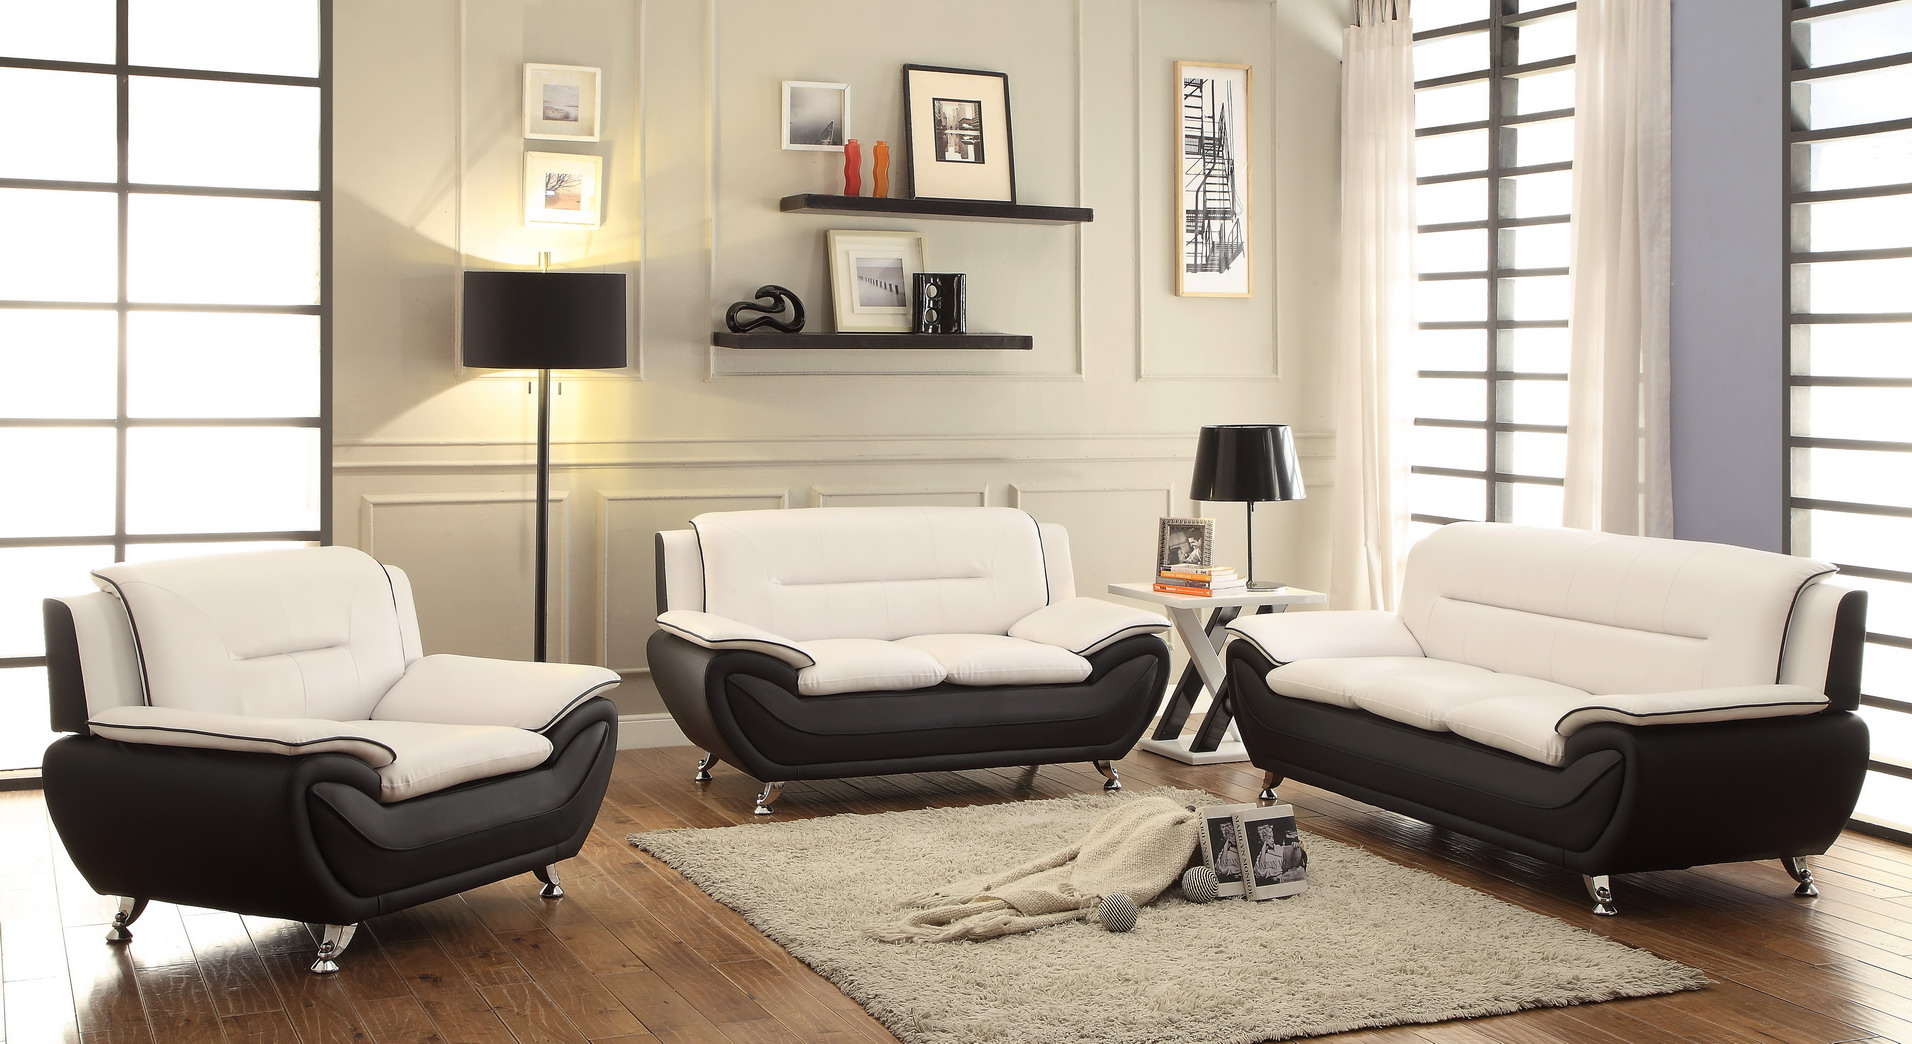 new 3 pcs contemporary bonded leather living room set 78655